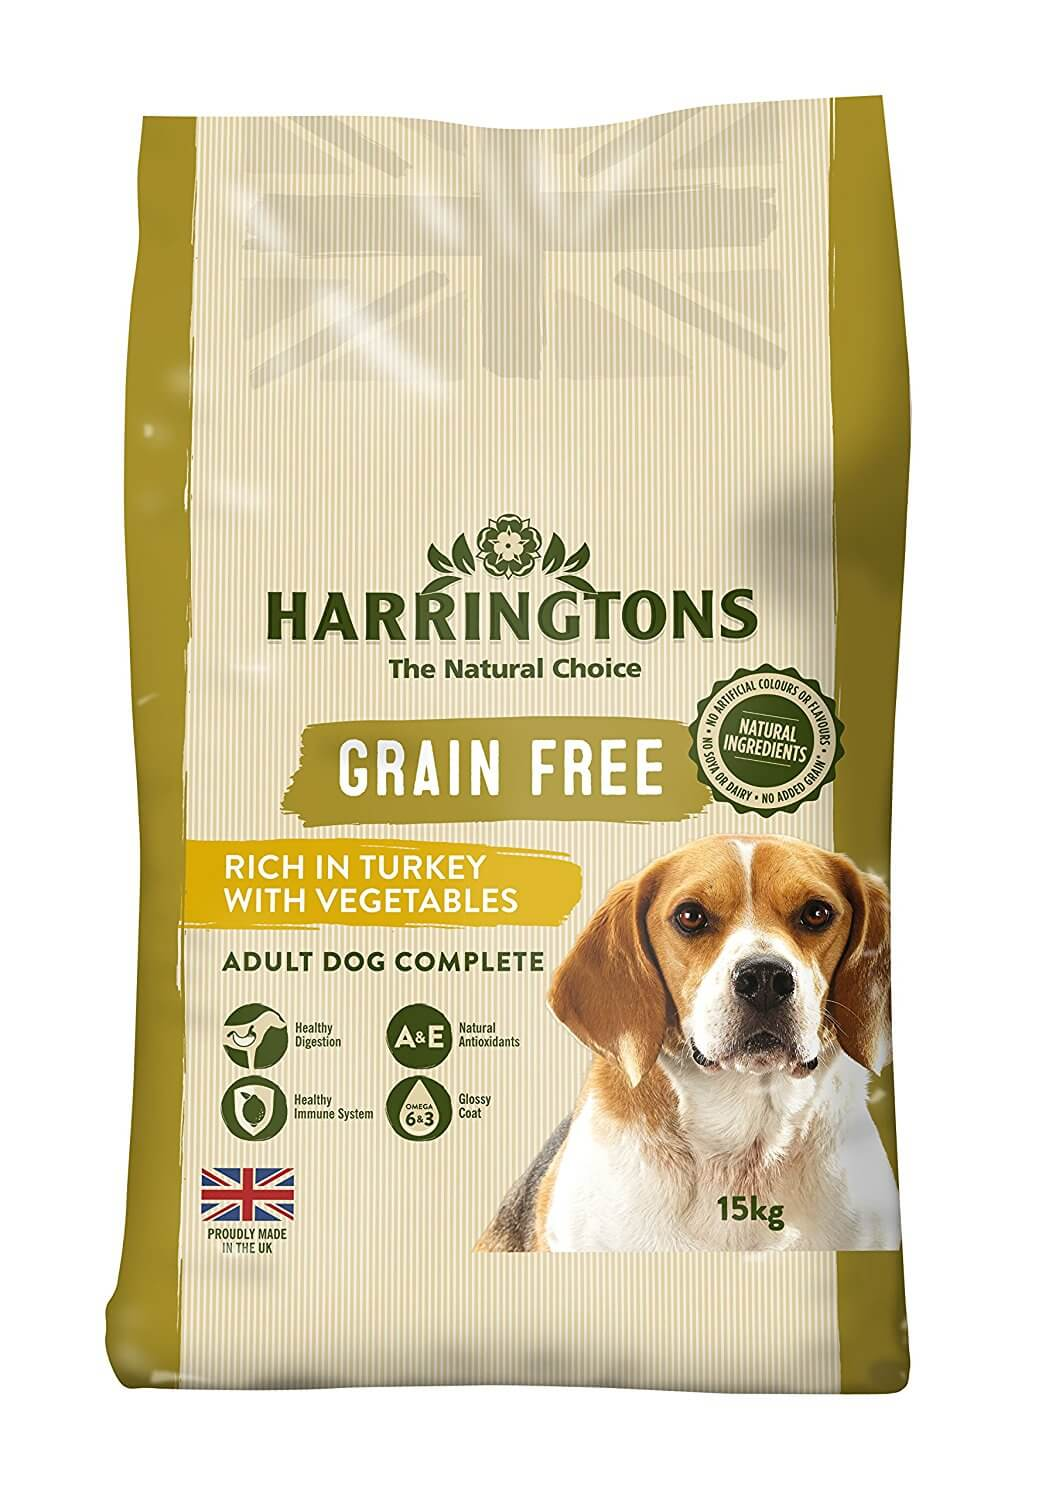 Harringtons dry dog food